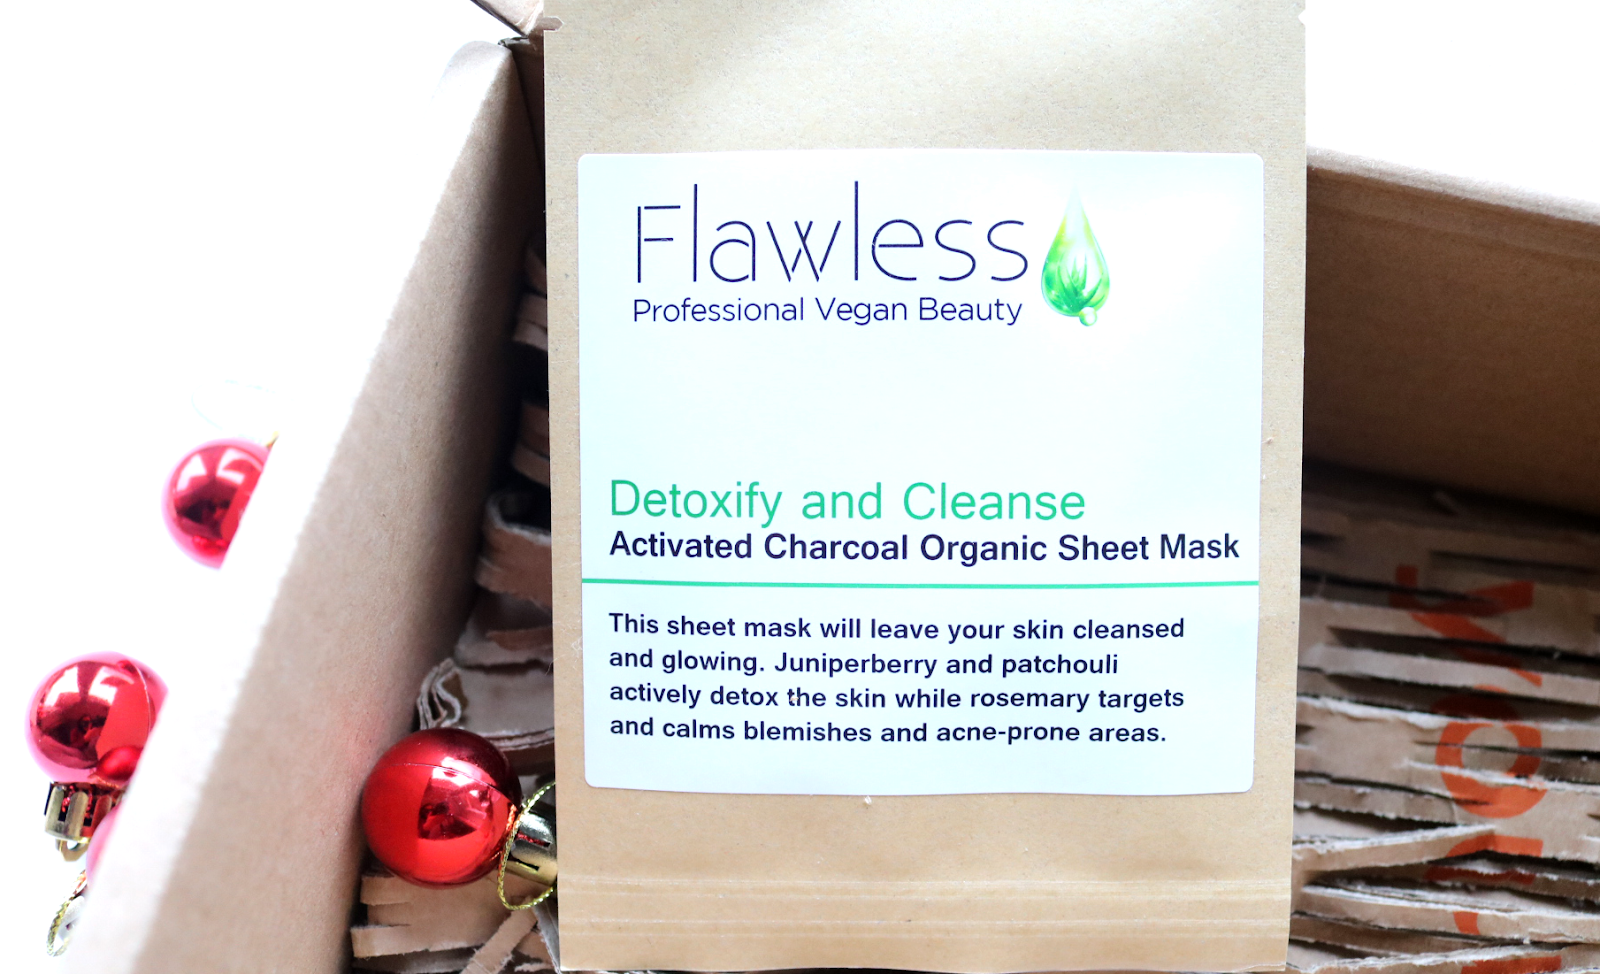 Flawless Detoxify & Cleanse Activated Charcoal Organic Sheet Mask